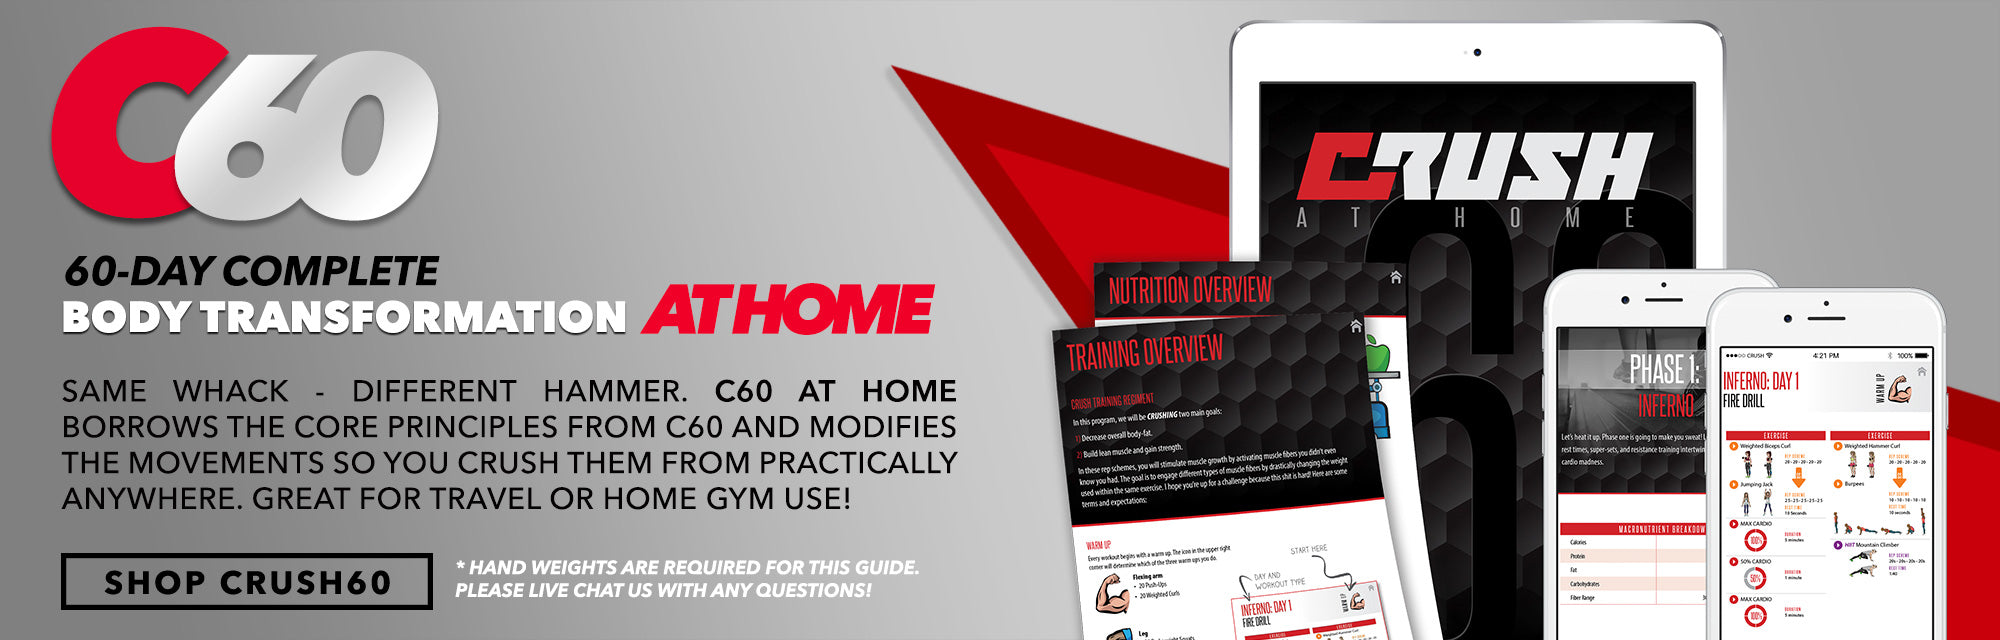 CRUSH AT HOME WORKOUT GUIDE BEN WILLIAMSON CRUSH FIT